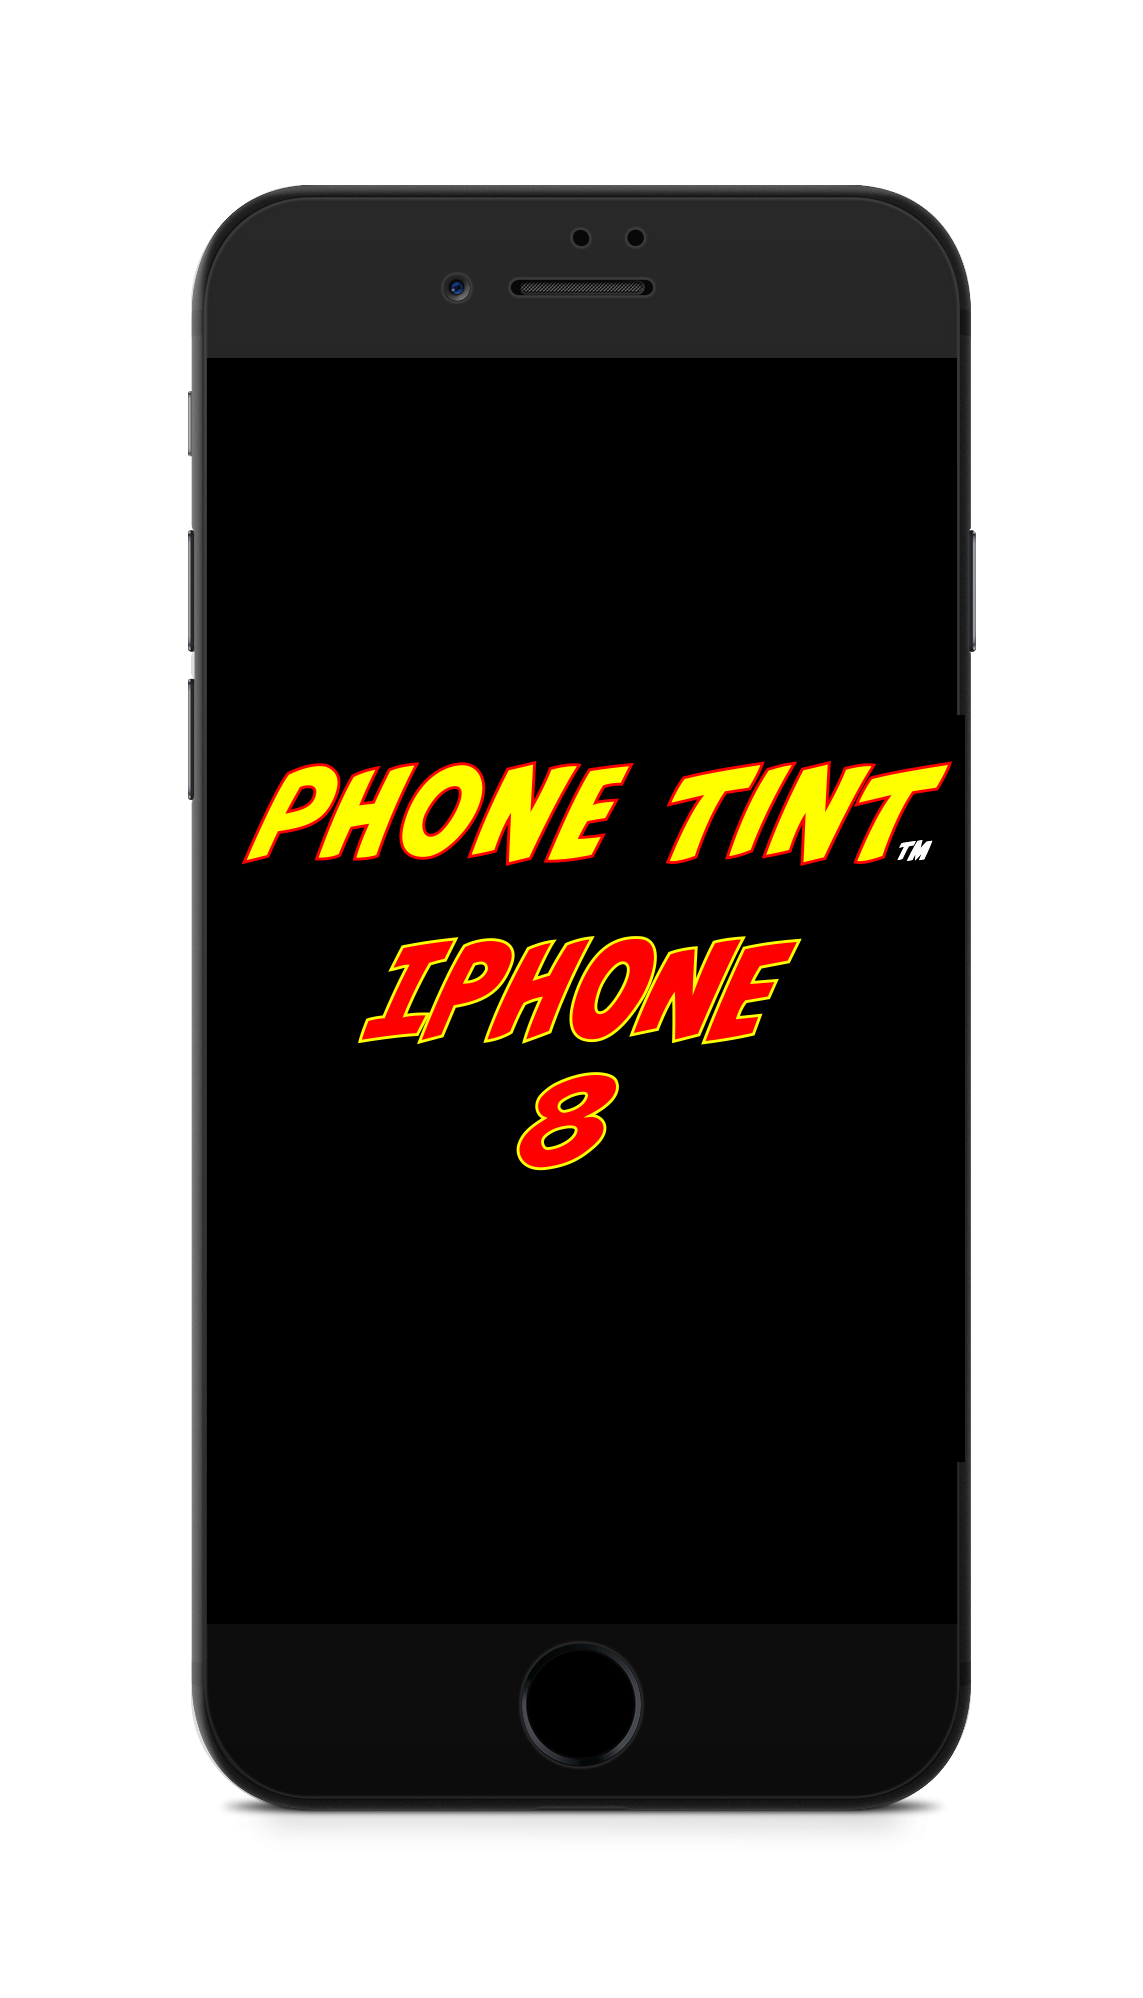 Iphone 8 phone tint privacy tempered glass screen protector. SKINZ Edmonton